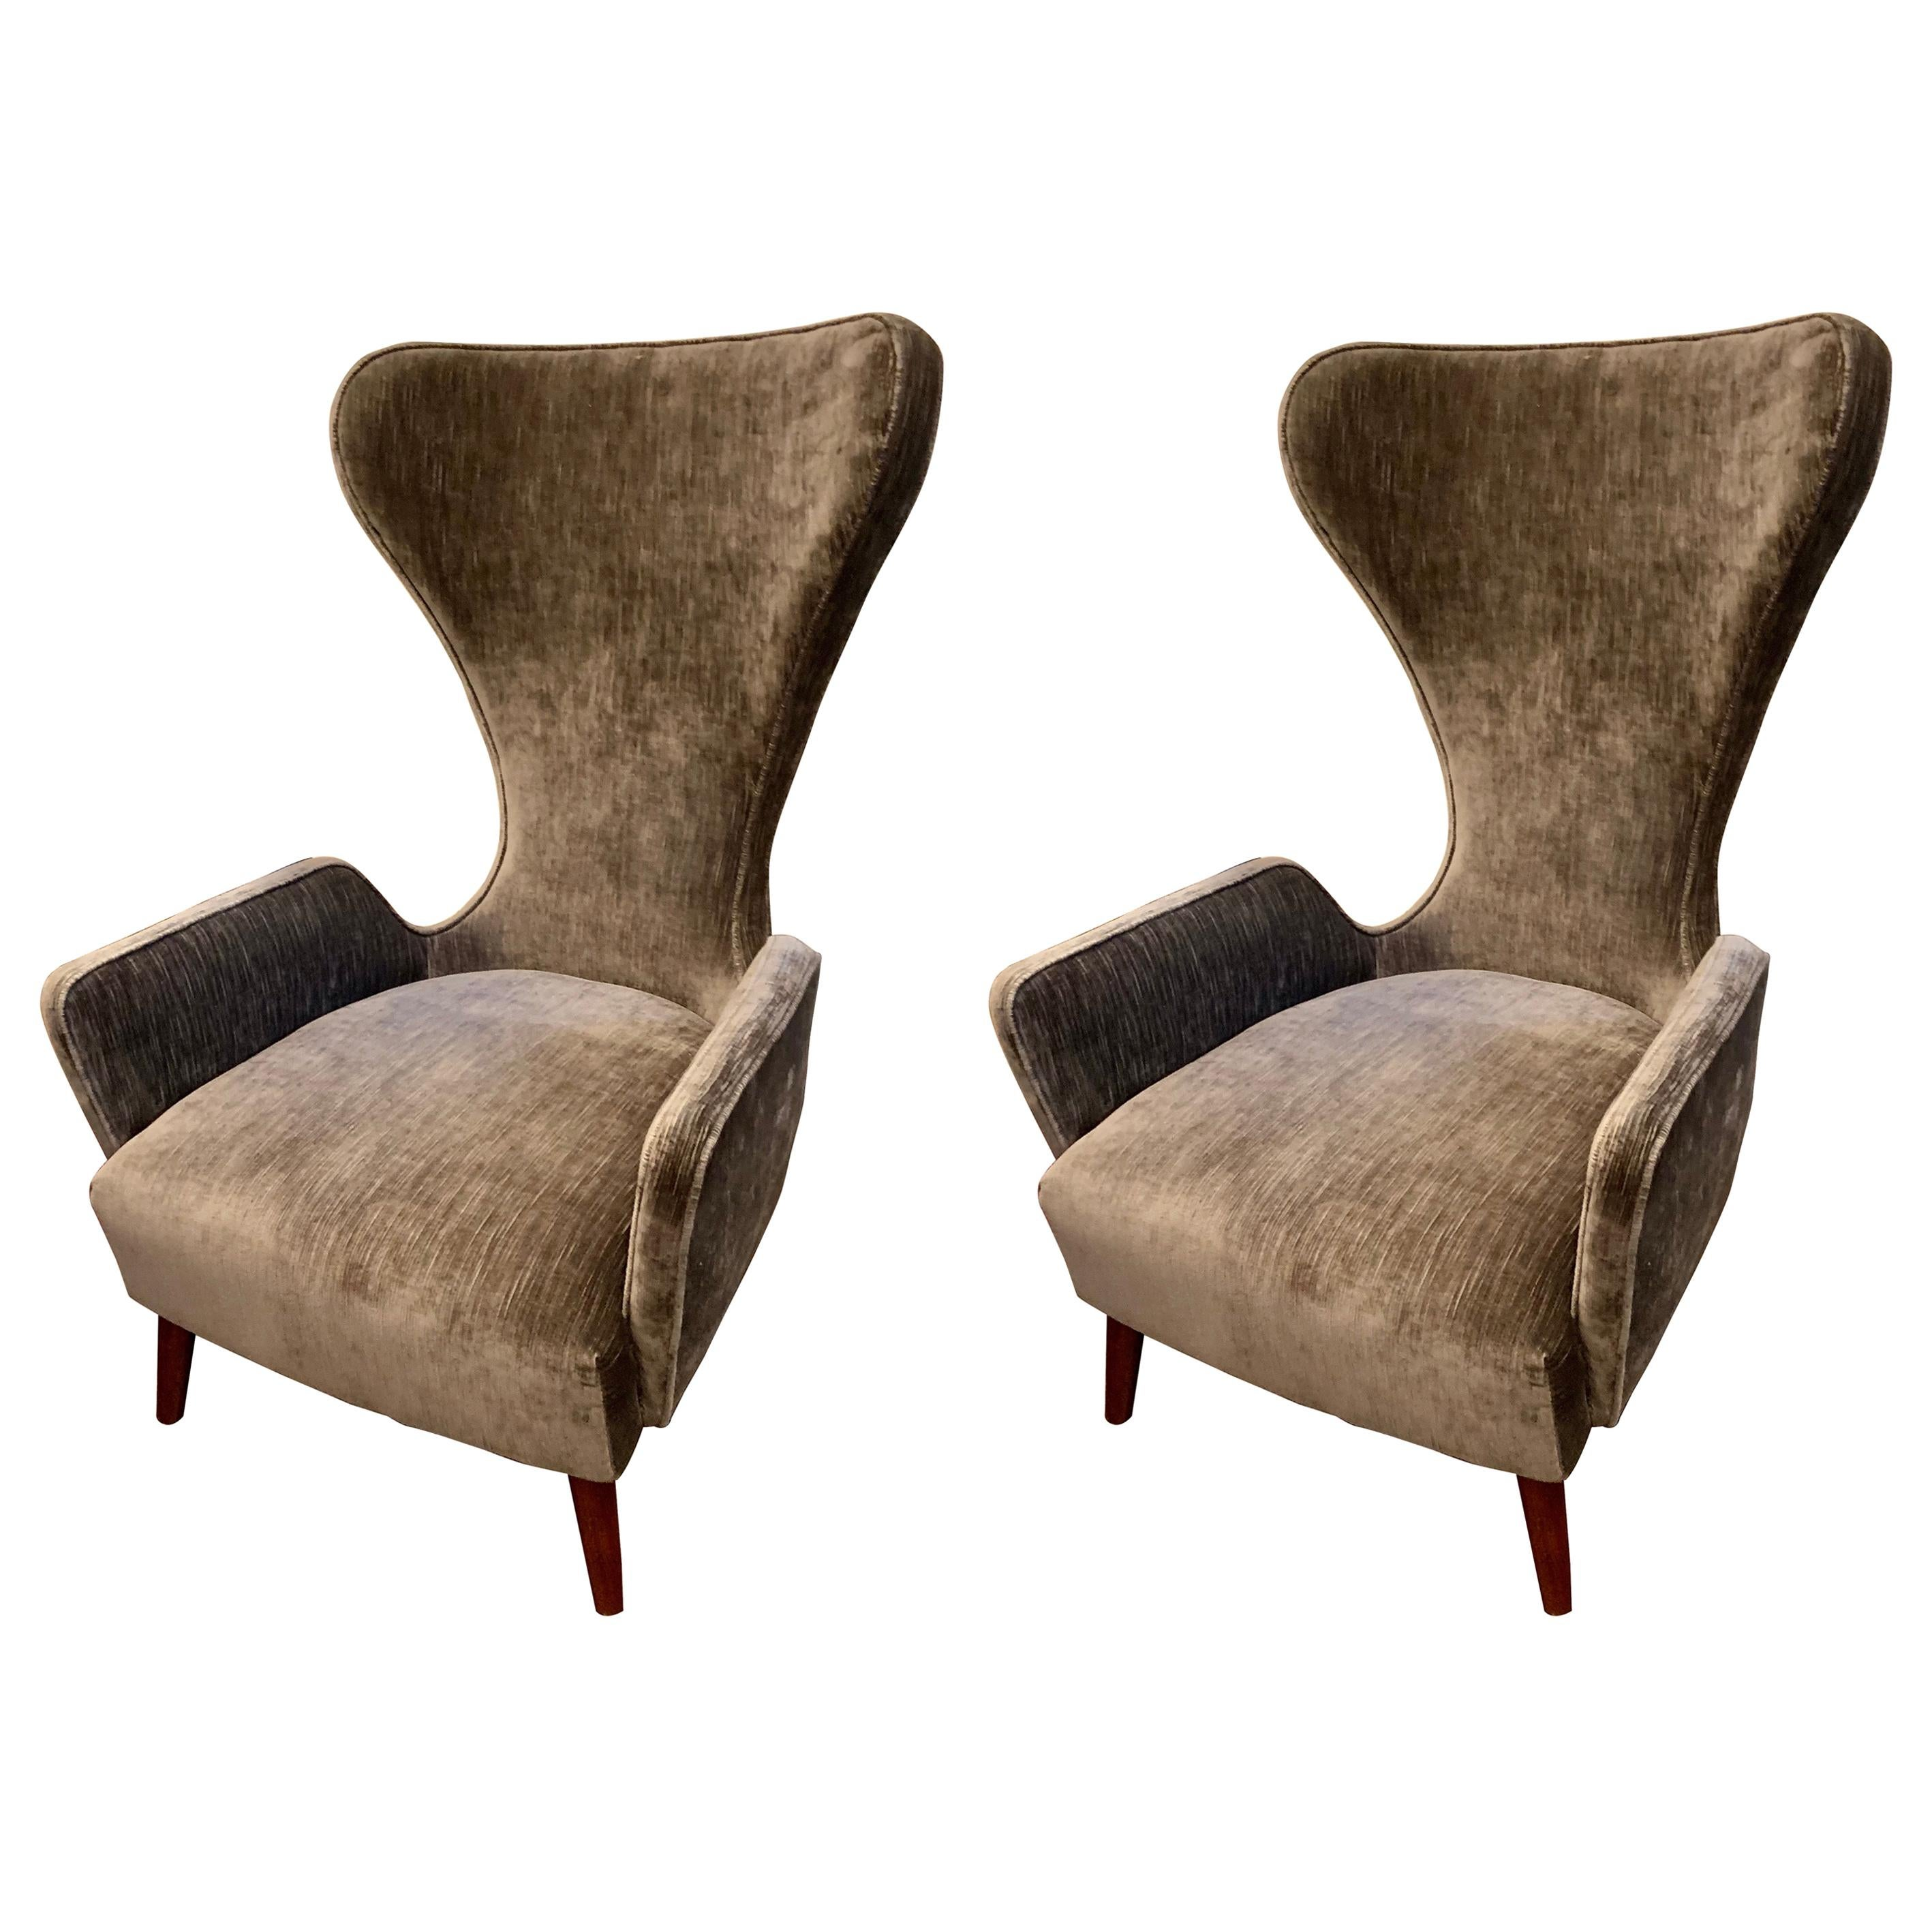 Pair of Mid-Century Large Sculptural Upholstered Tulip Lounge Chairs